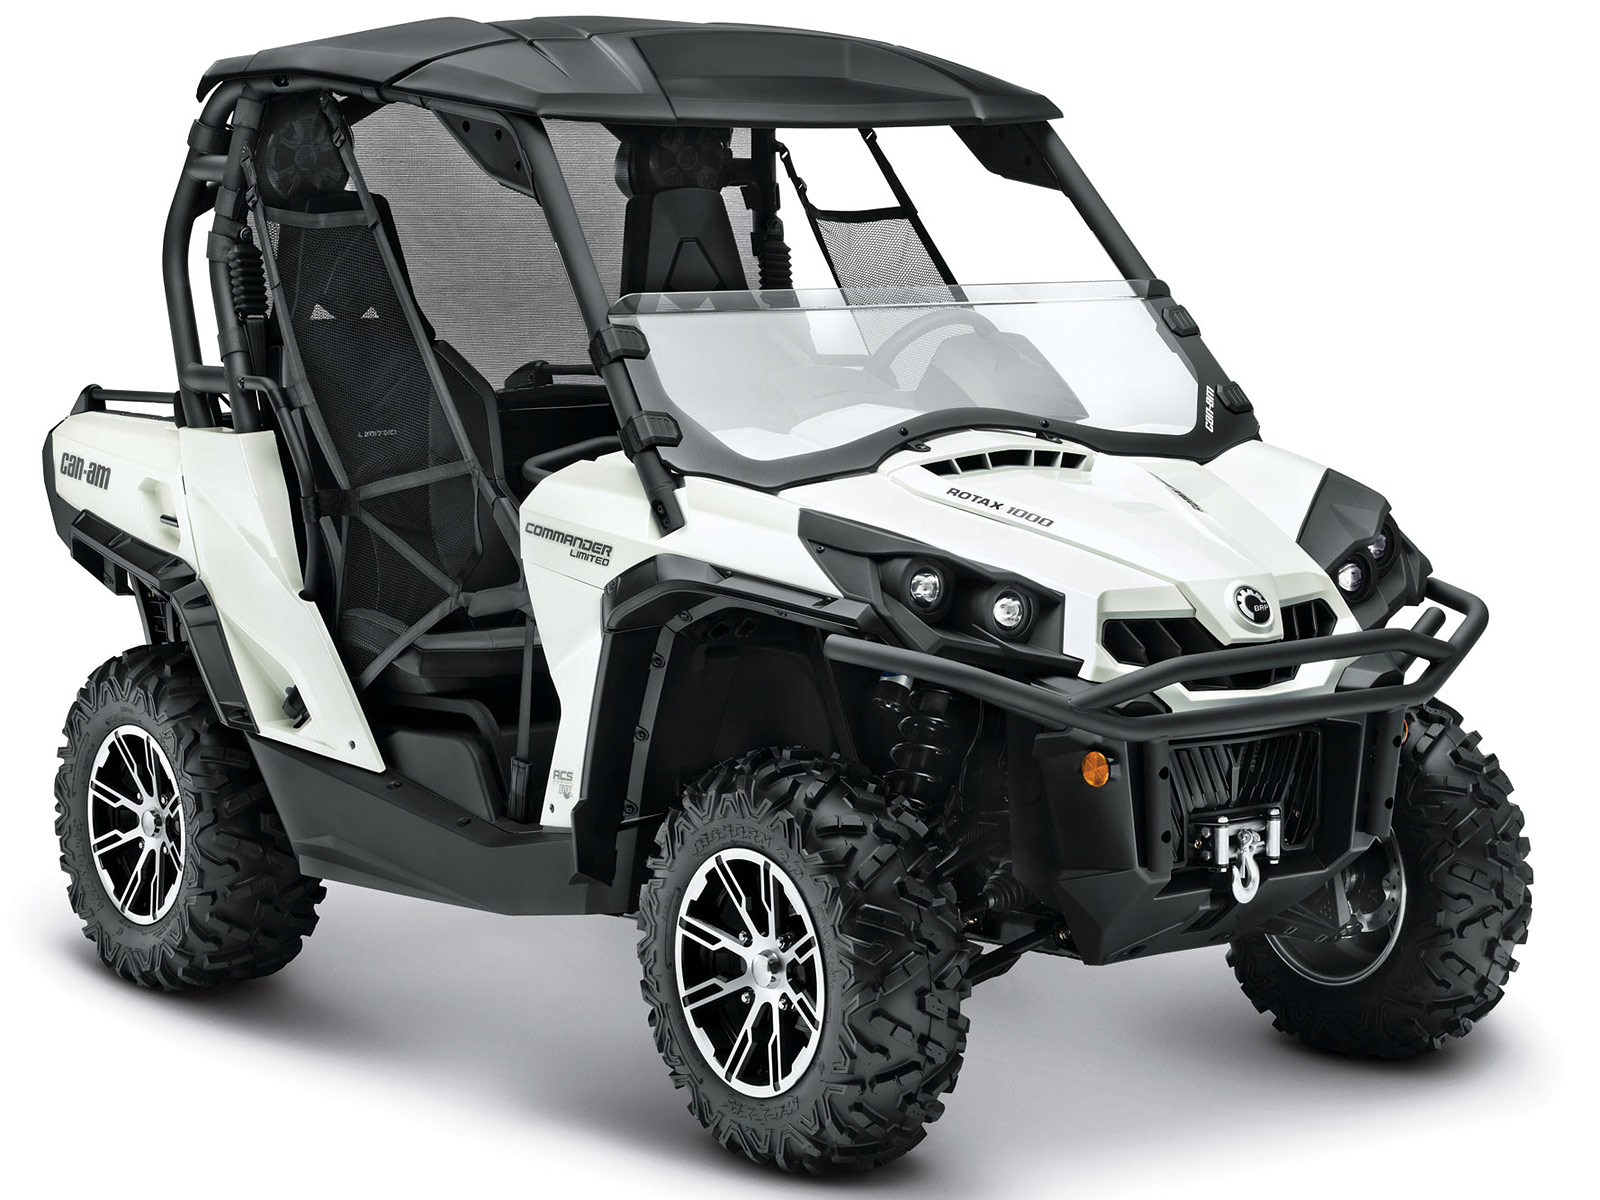 hight resolution of 2013 can am commander 1000 limited atv pictures 480x360 pixels